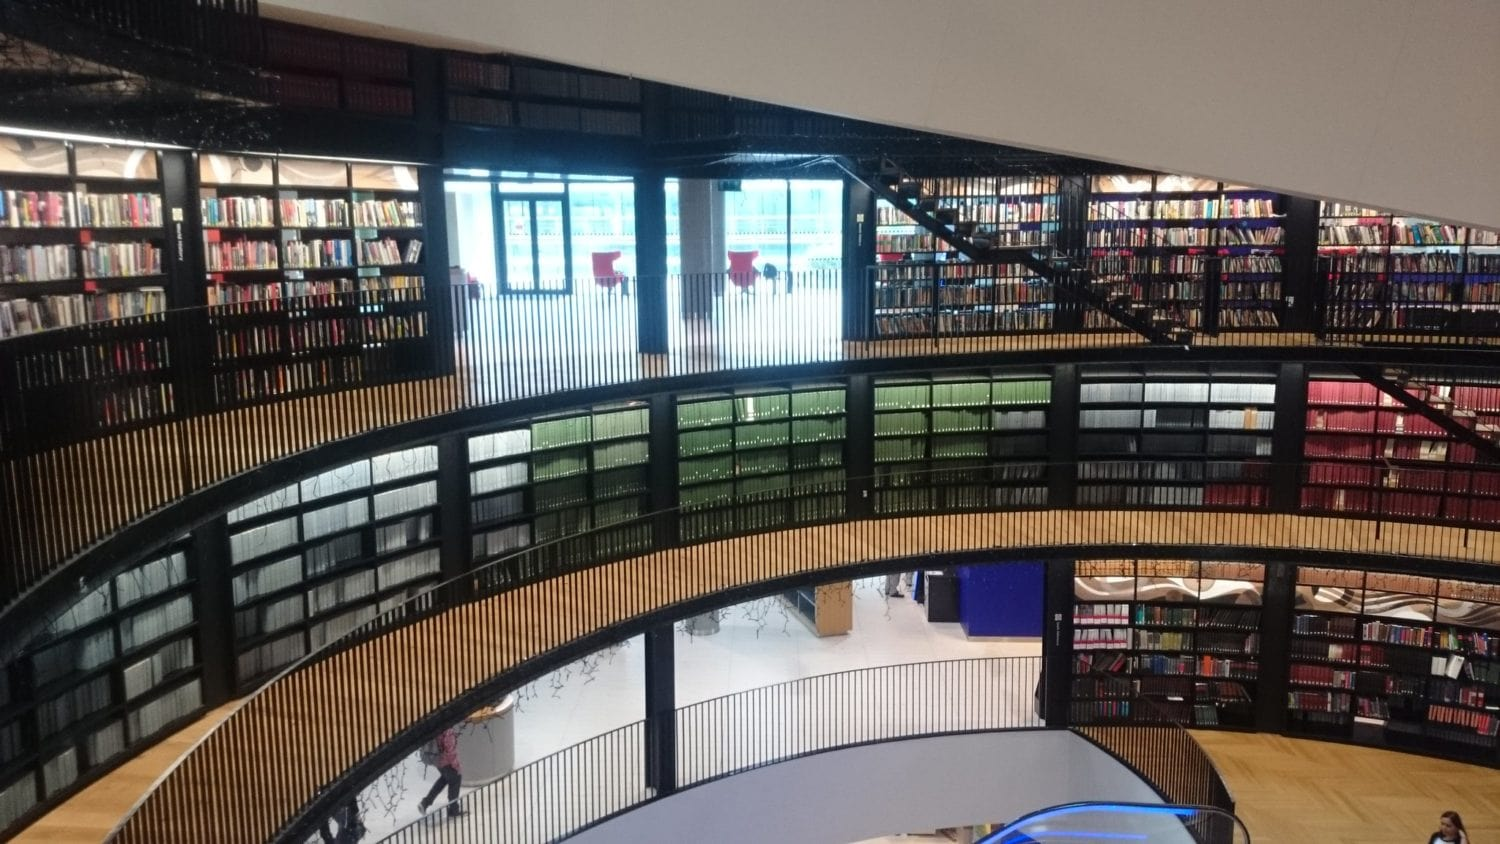 Interior walkways of Birmingham Library lined with books